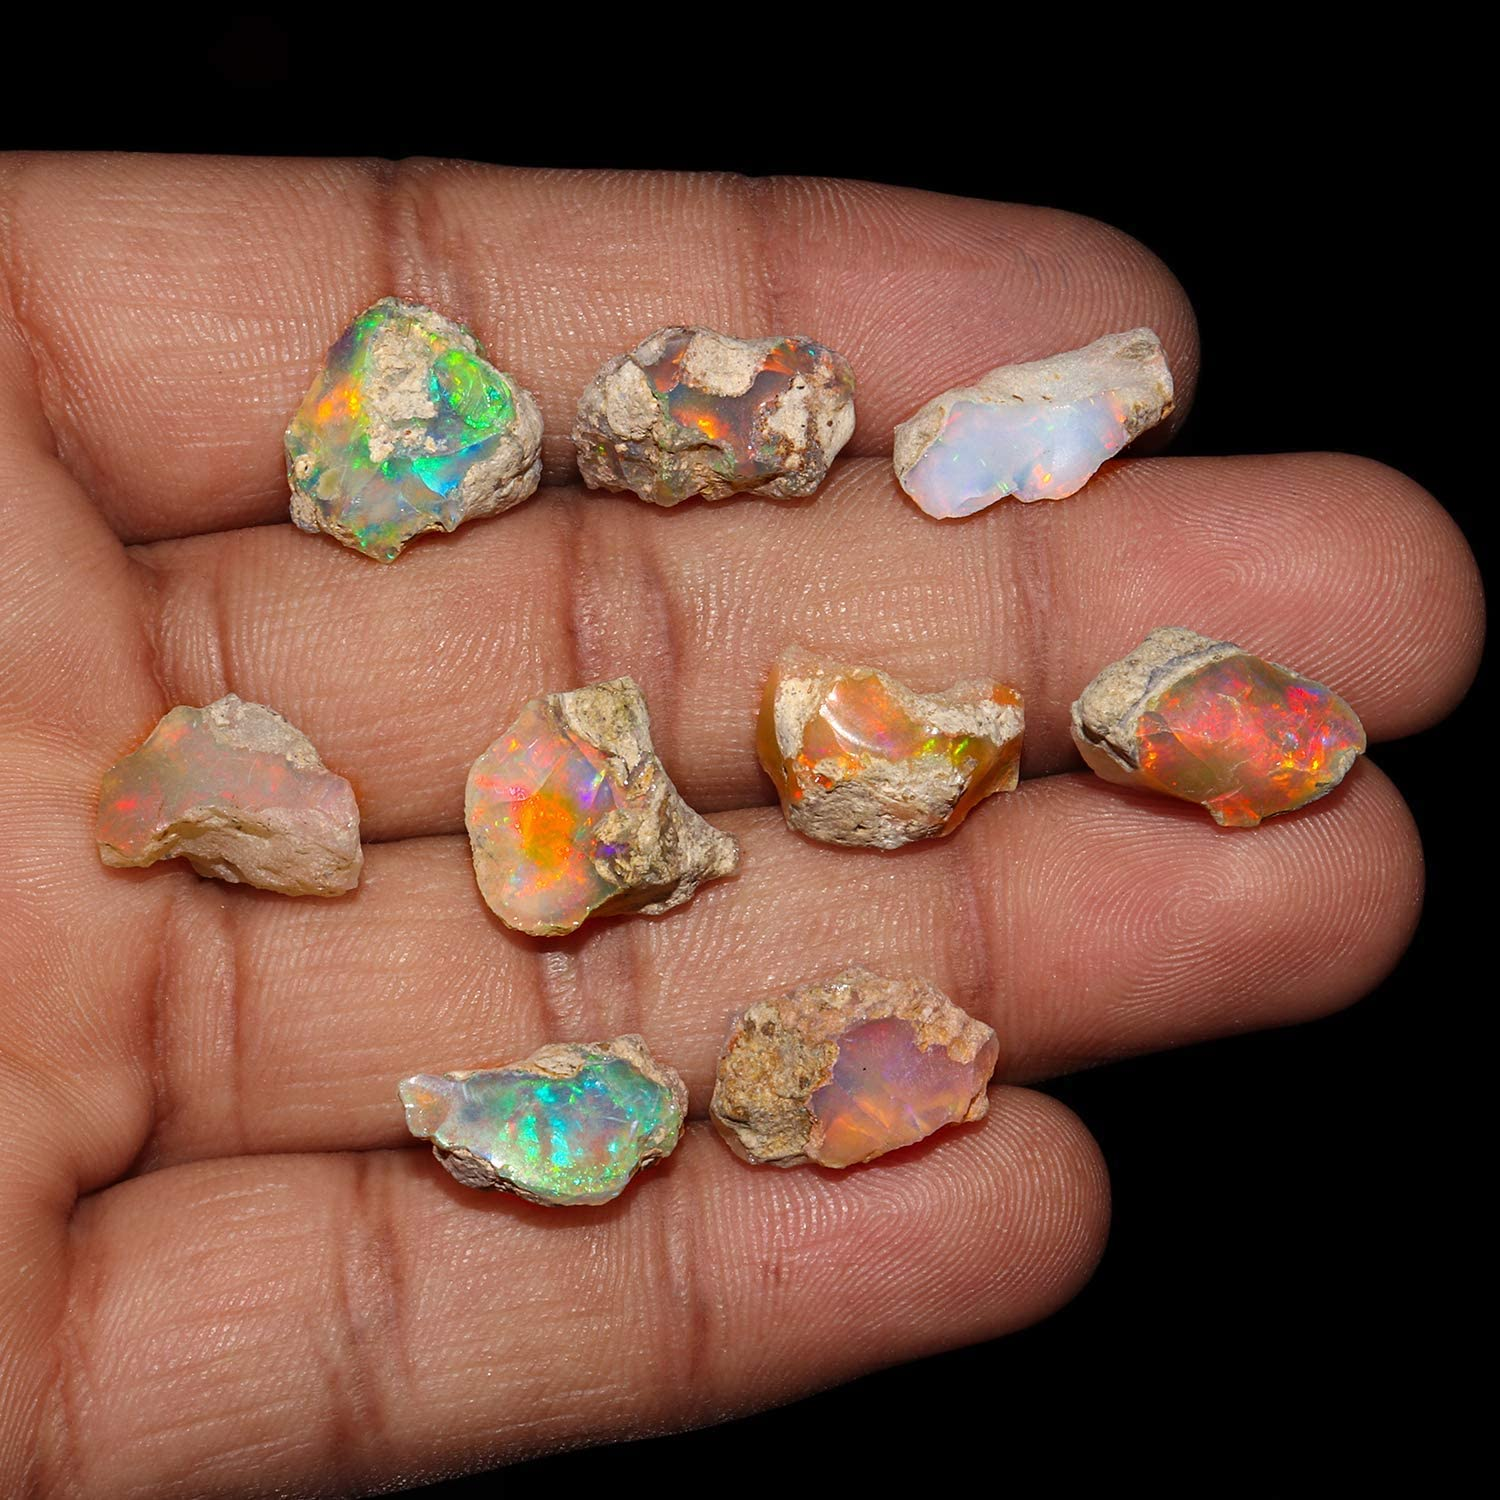 14 Cts Natural Rare Ethiopian Opal Smooth Multi Fire Ethiopian Opal 5 Pisces Lot Fire Opal Stone Jewelry Making Craft Supplies R23702